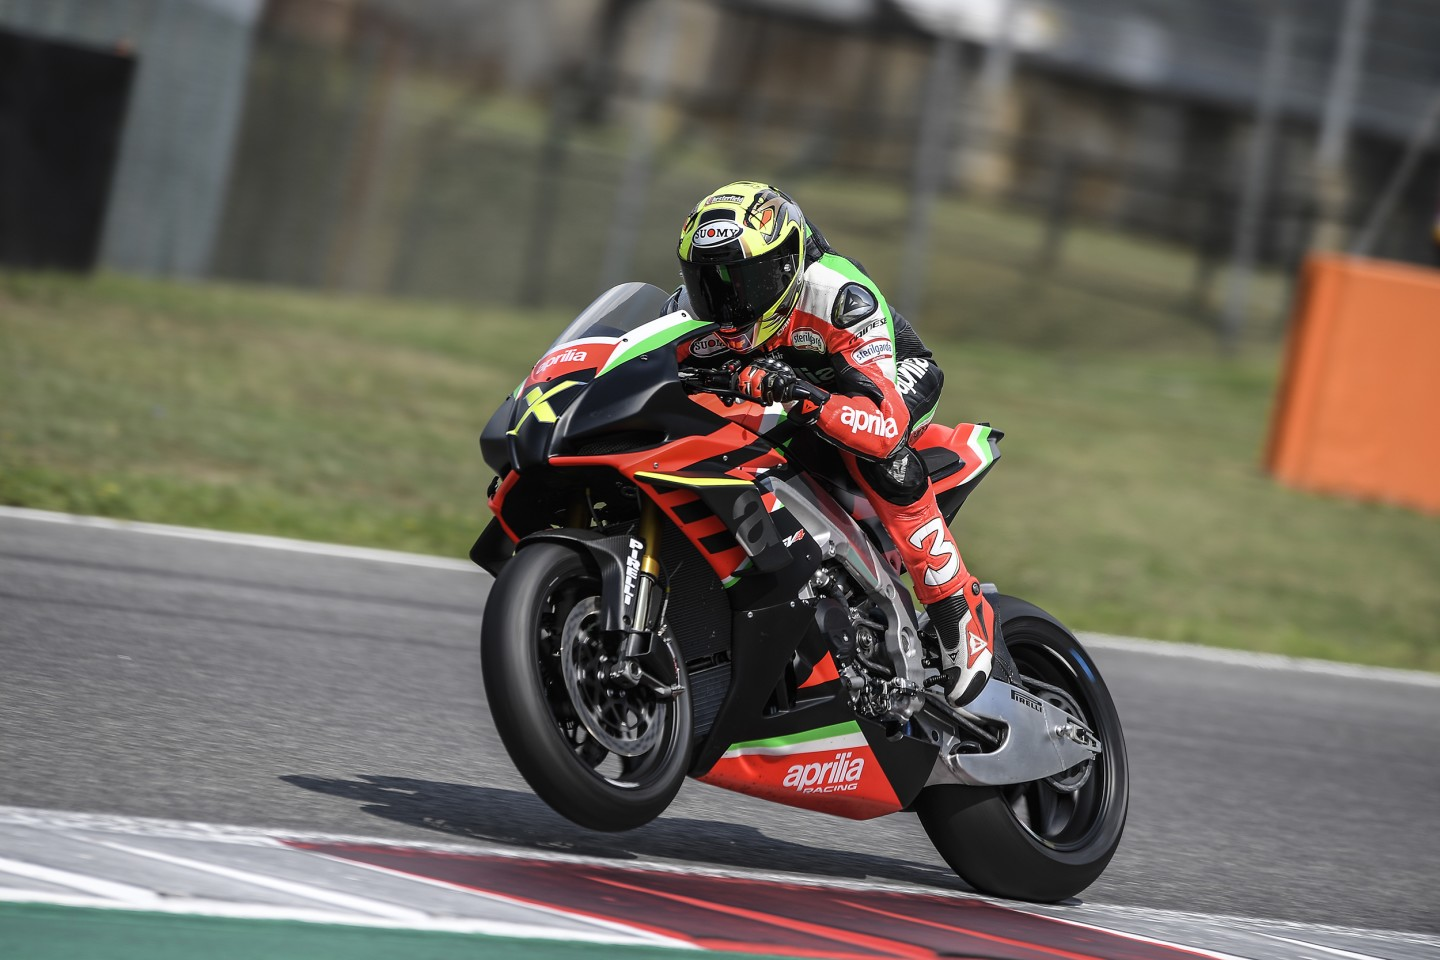 """The ultra-exclusive Aprilia RSV4 X has a stratospheric power-to-weight ratio and a weird """"no neutral"""" gearbox"""